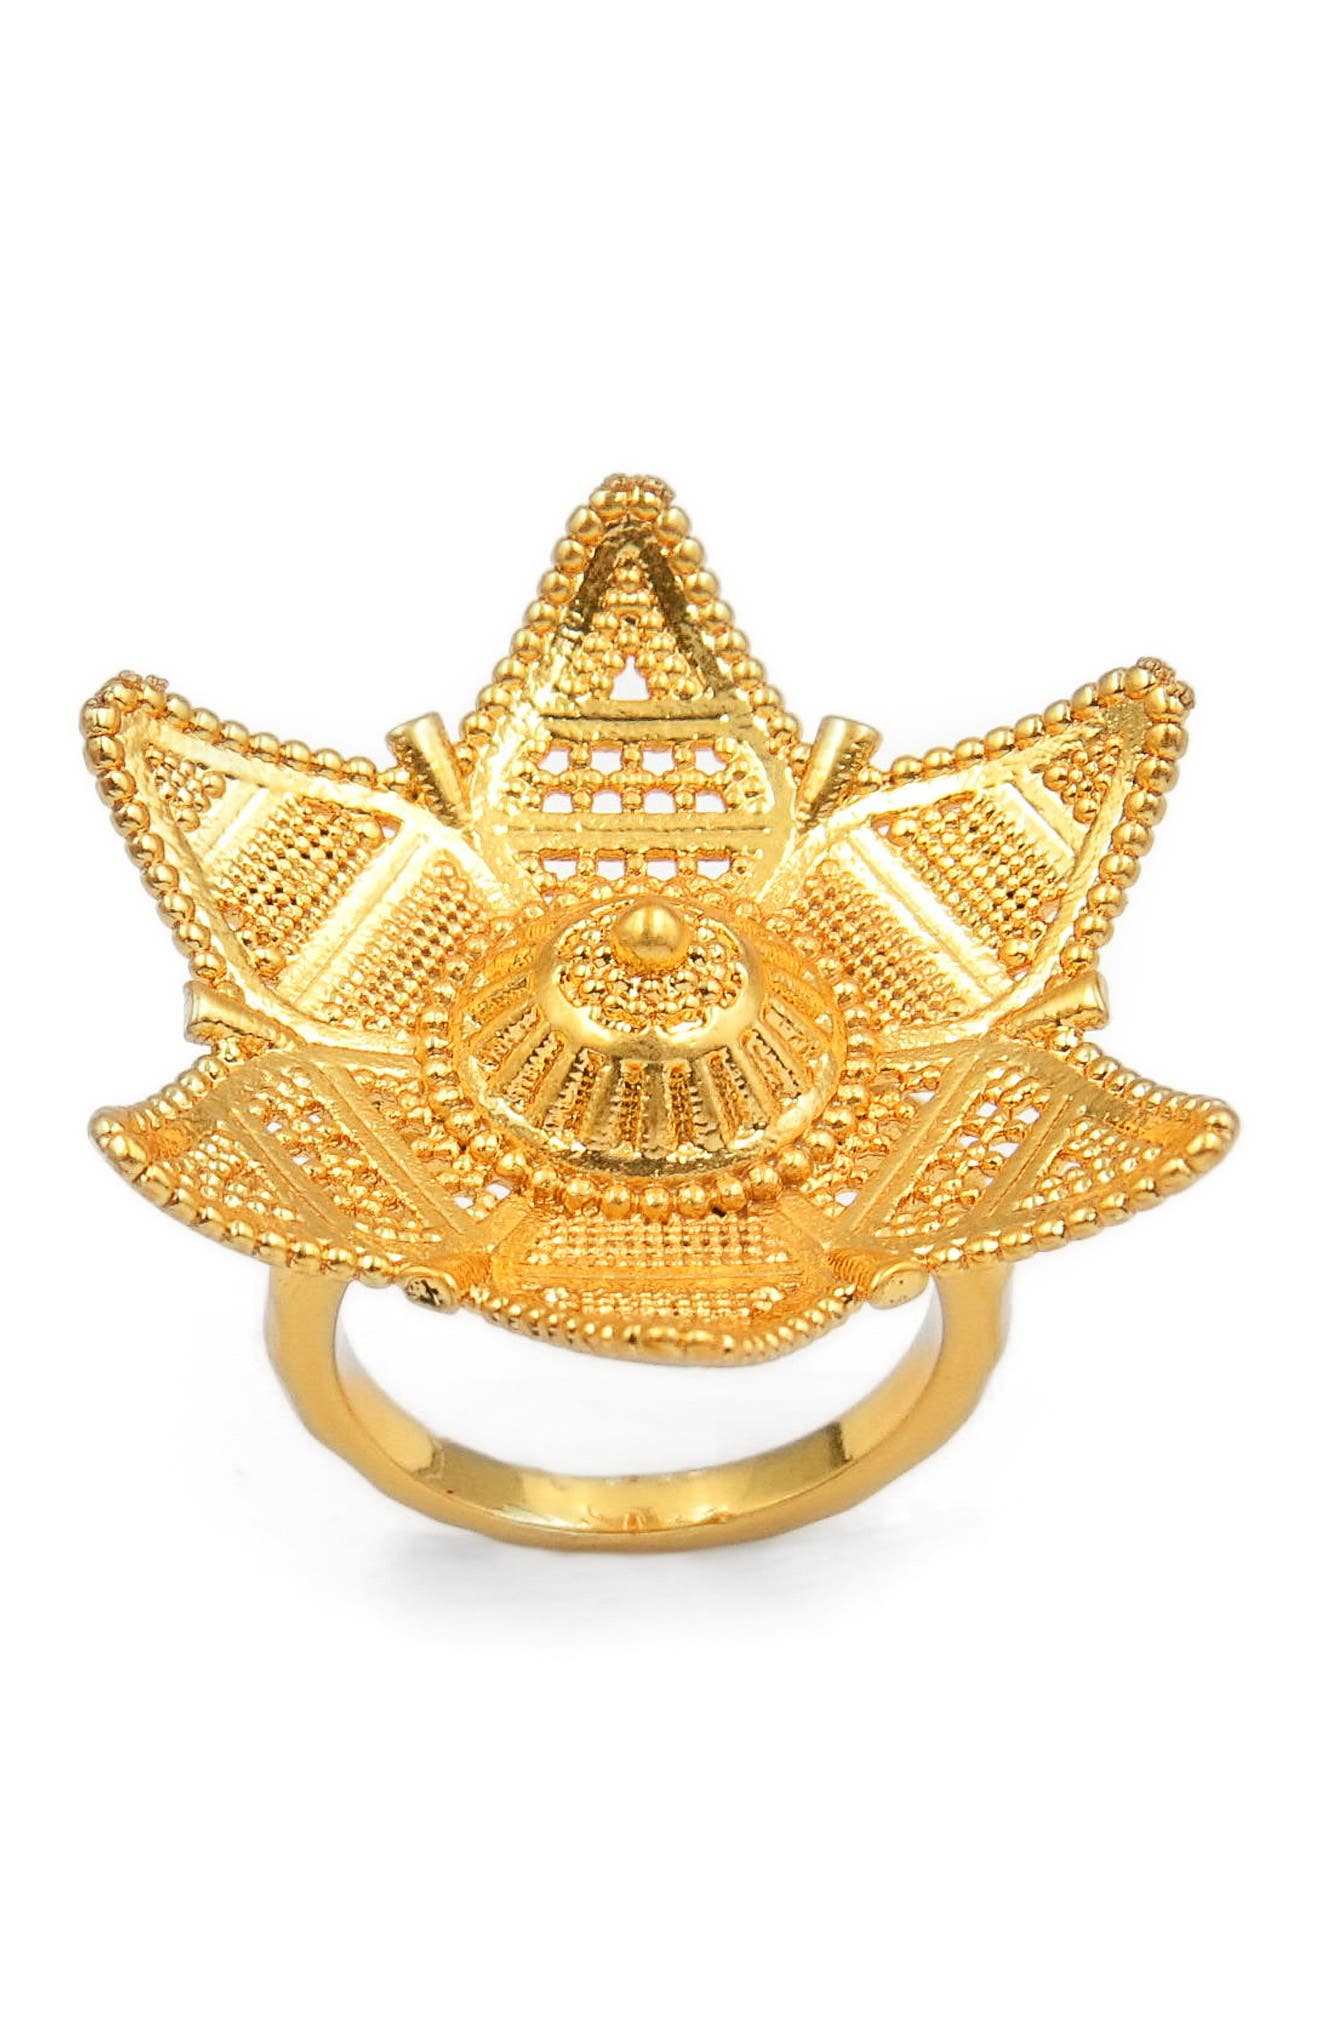 Six-Point Filigree Star Ring,                             Alternate thumbnail 3, color,